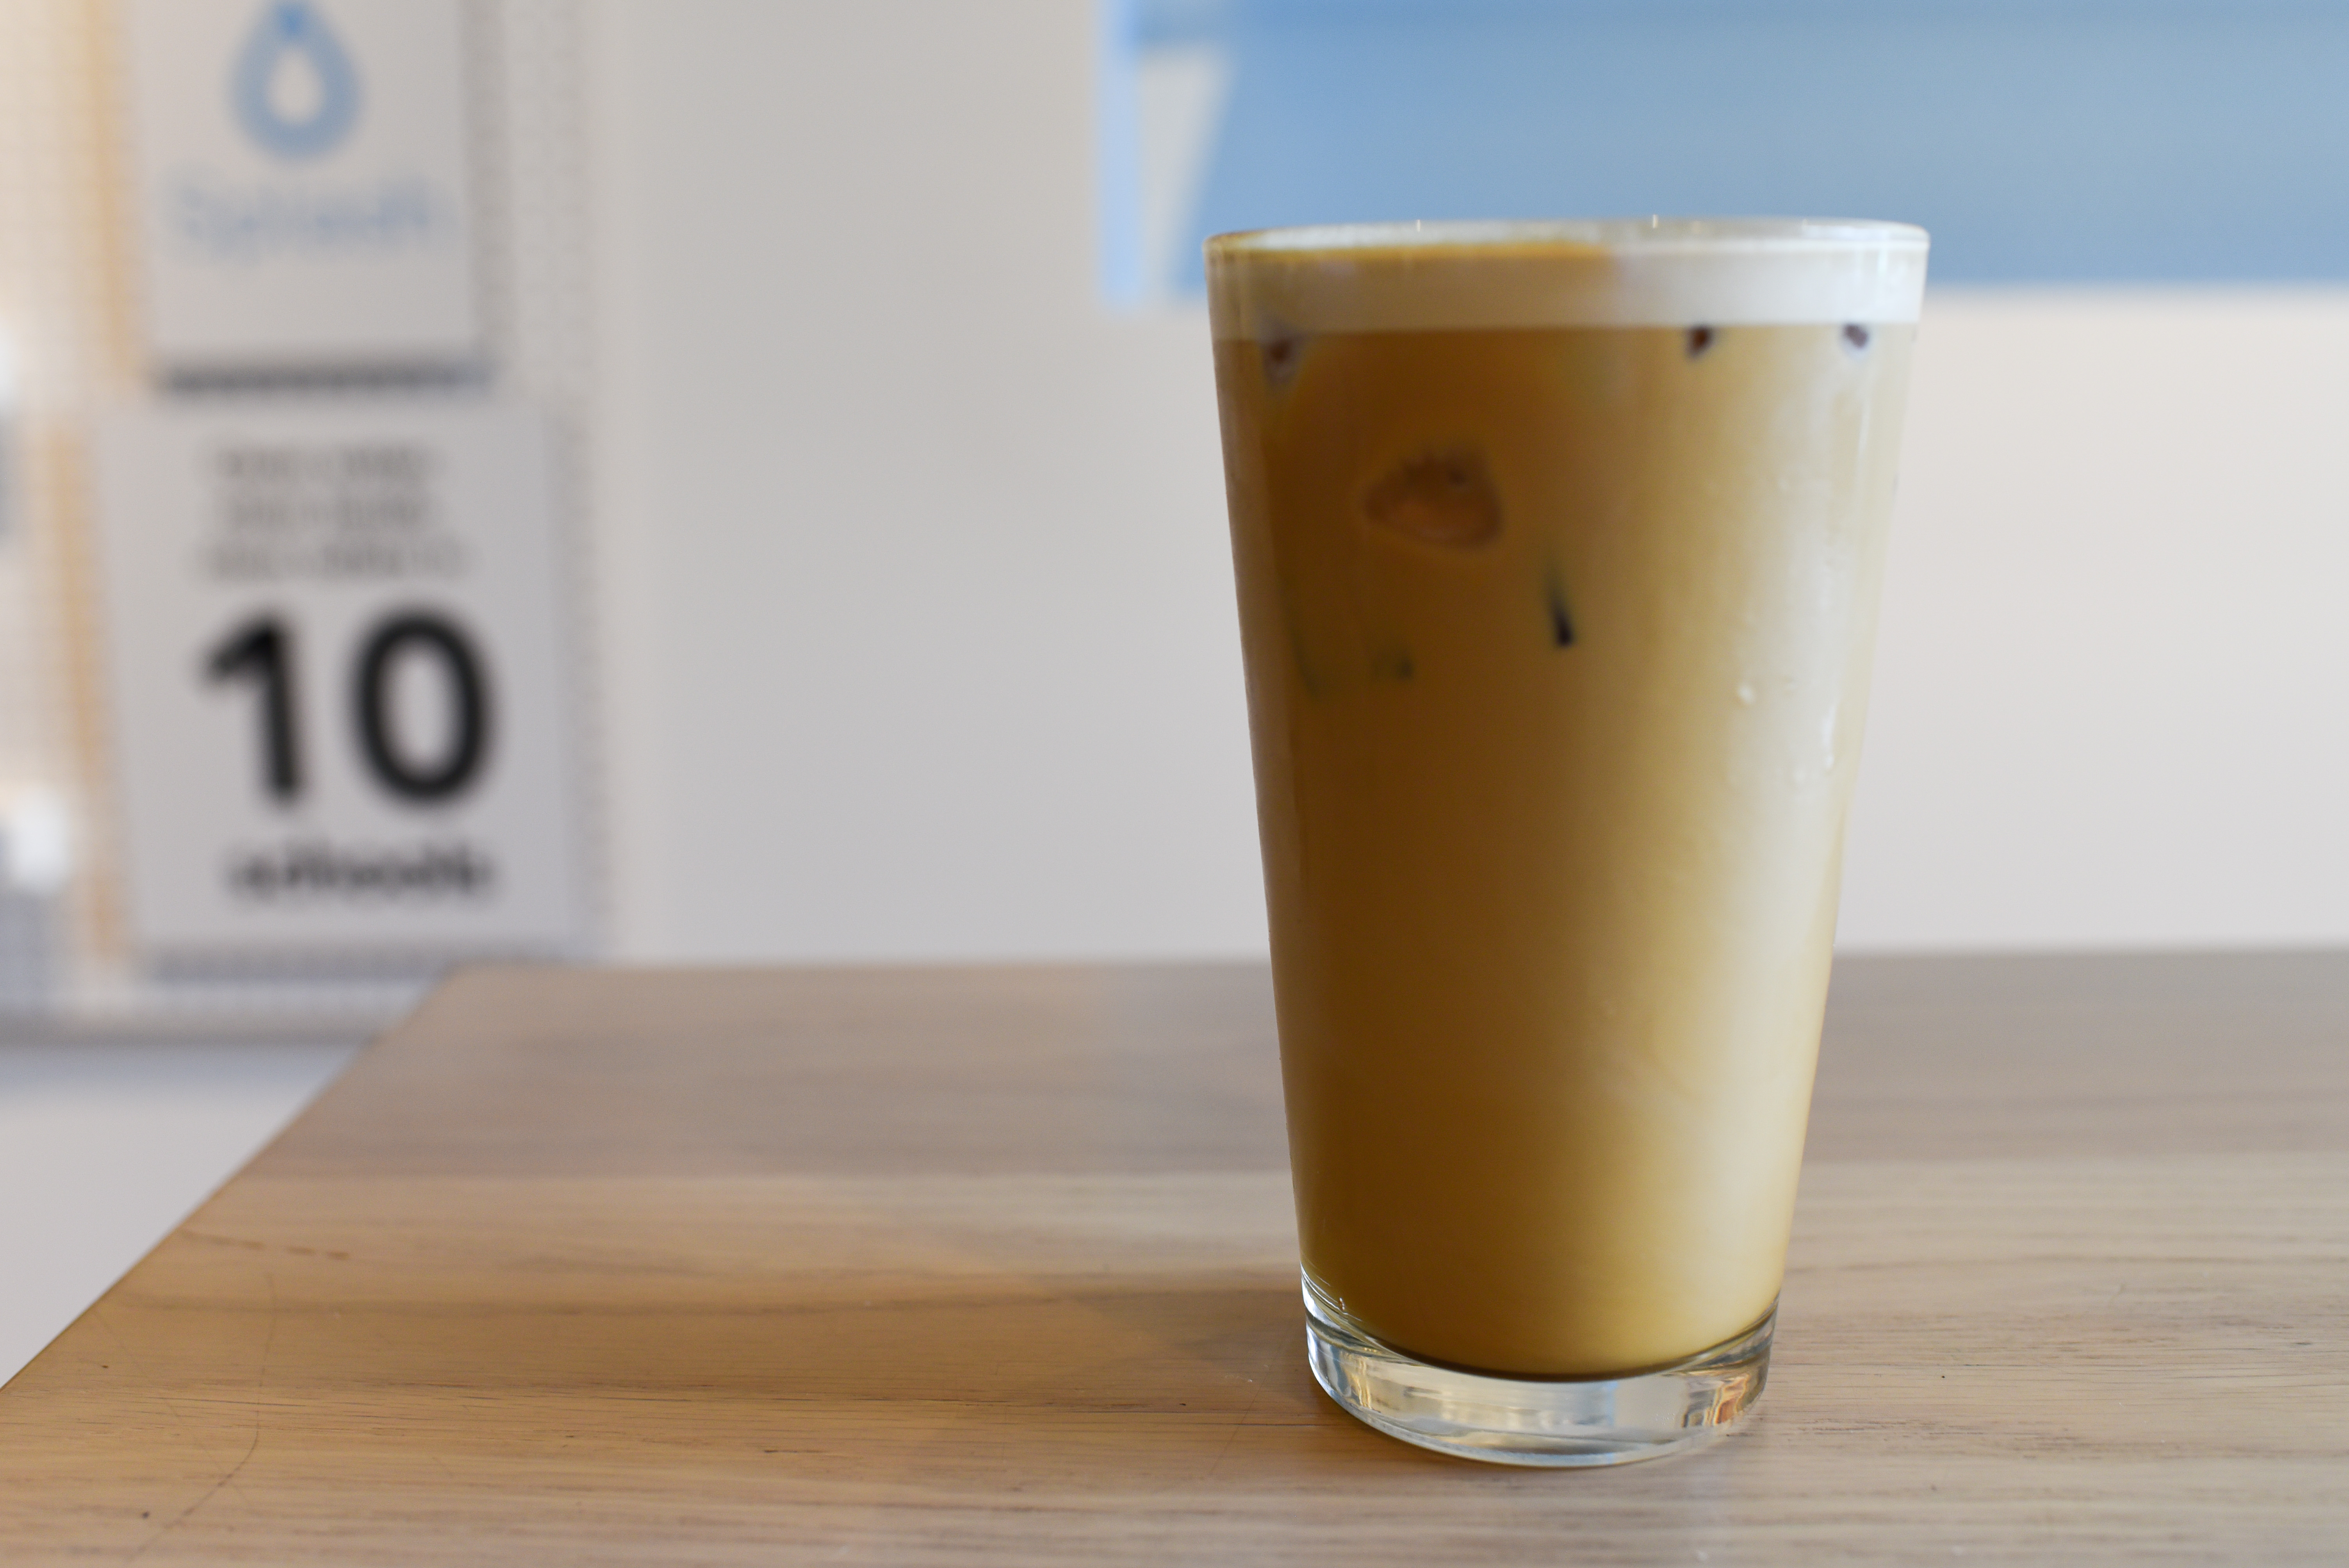 Miir in Fremont wins top points for their delicious nitro cold brew which comes either black or with cream and sugar. The creamy cup is easy to sip and is easily a drink one could enjoy all day long. Served in a pint glass, Miir's Nitro Cold Brew is the best in town. (Image: Rebecca Mongrain/Seattle Refined)